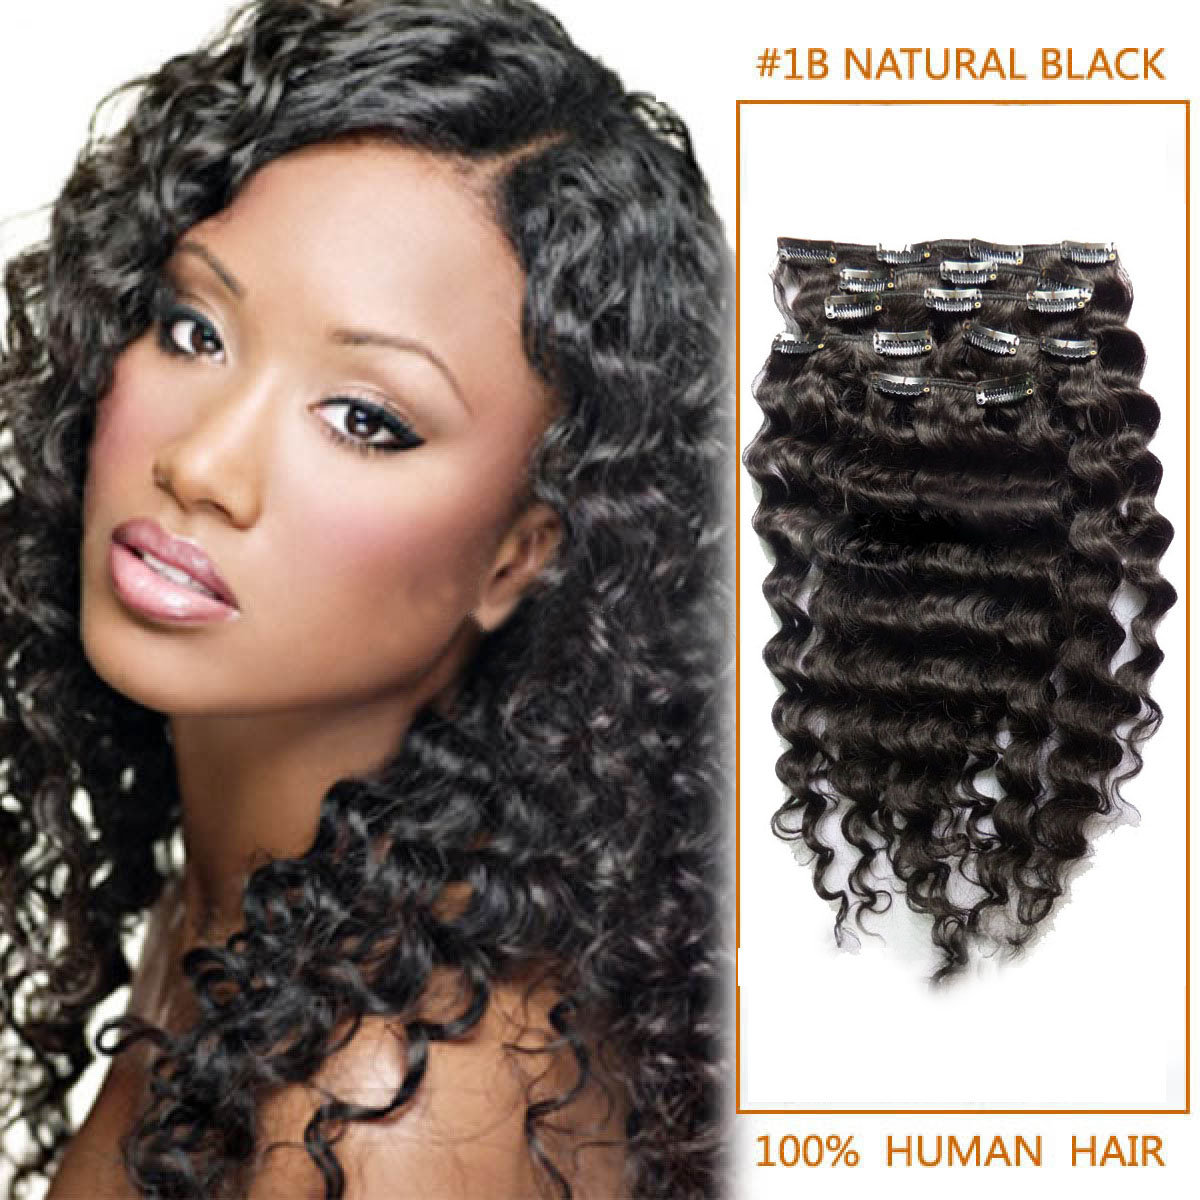 26 Inch Versatile 1b Natural Black Clip In Hair Extensions Curly 7